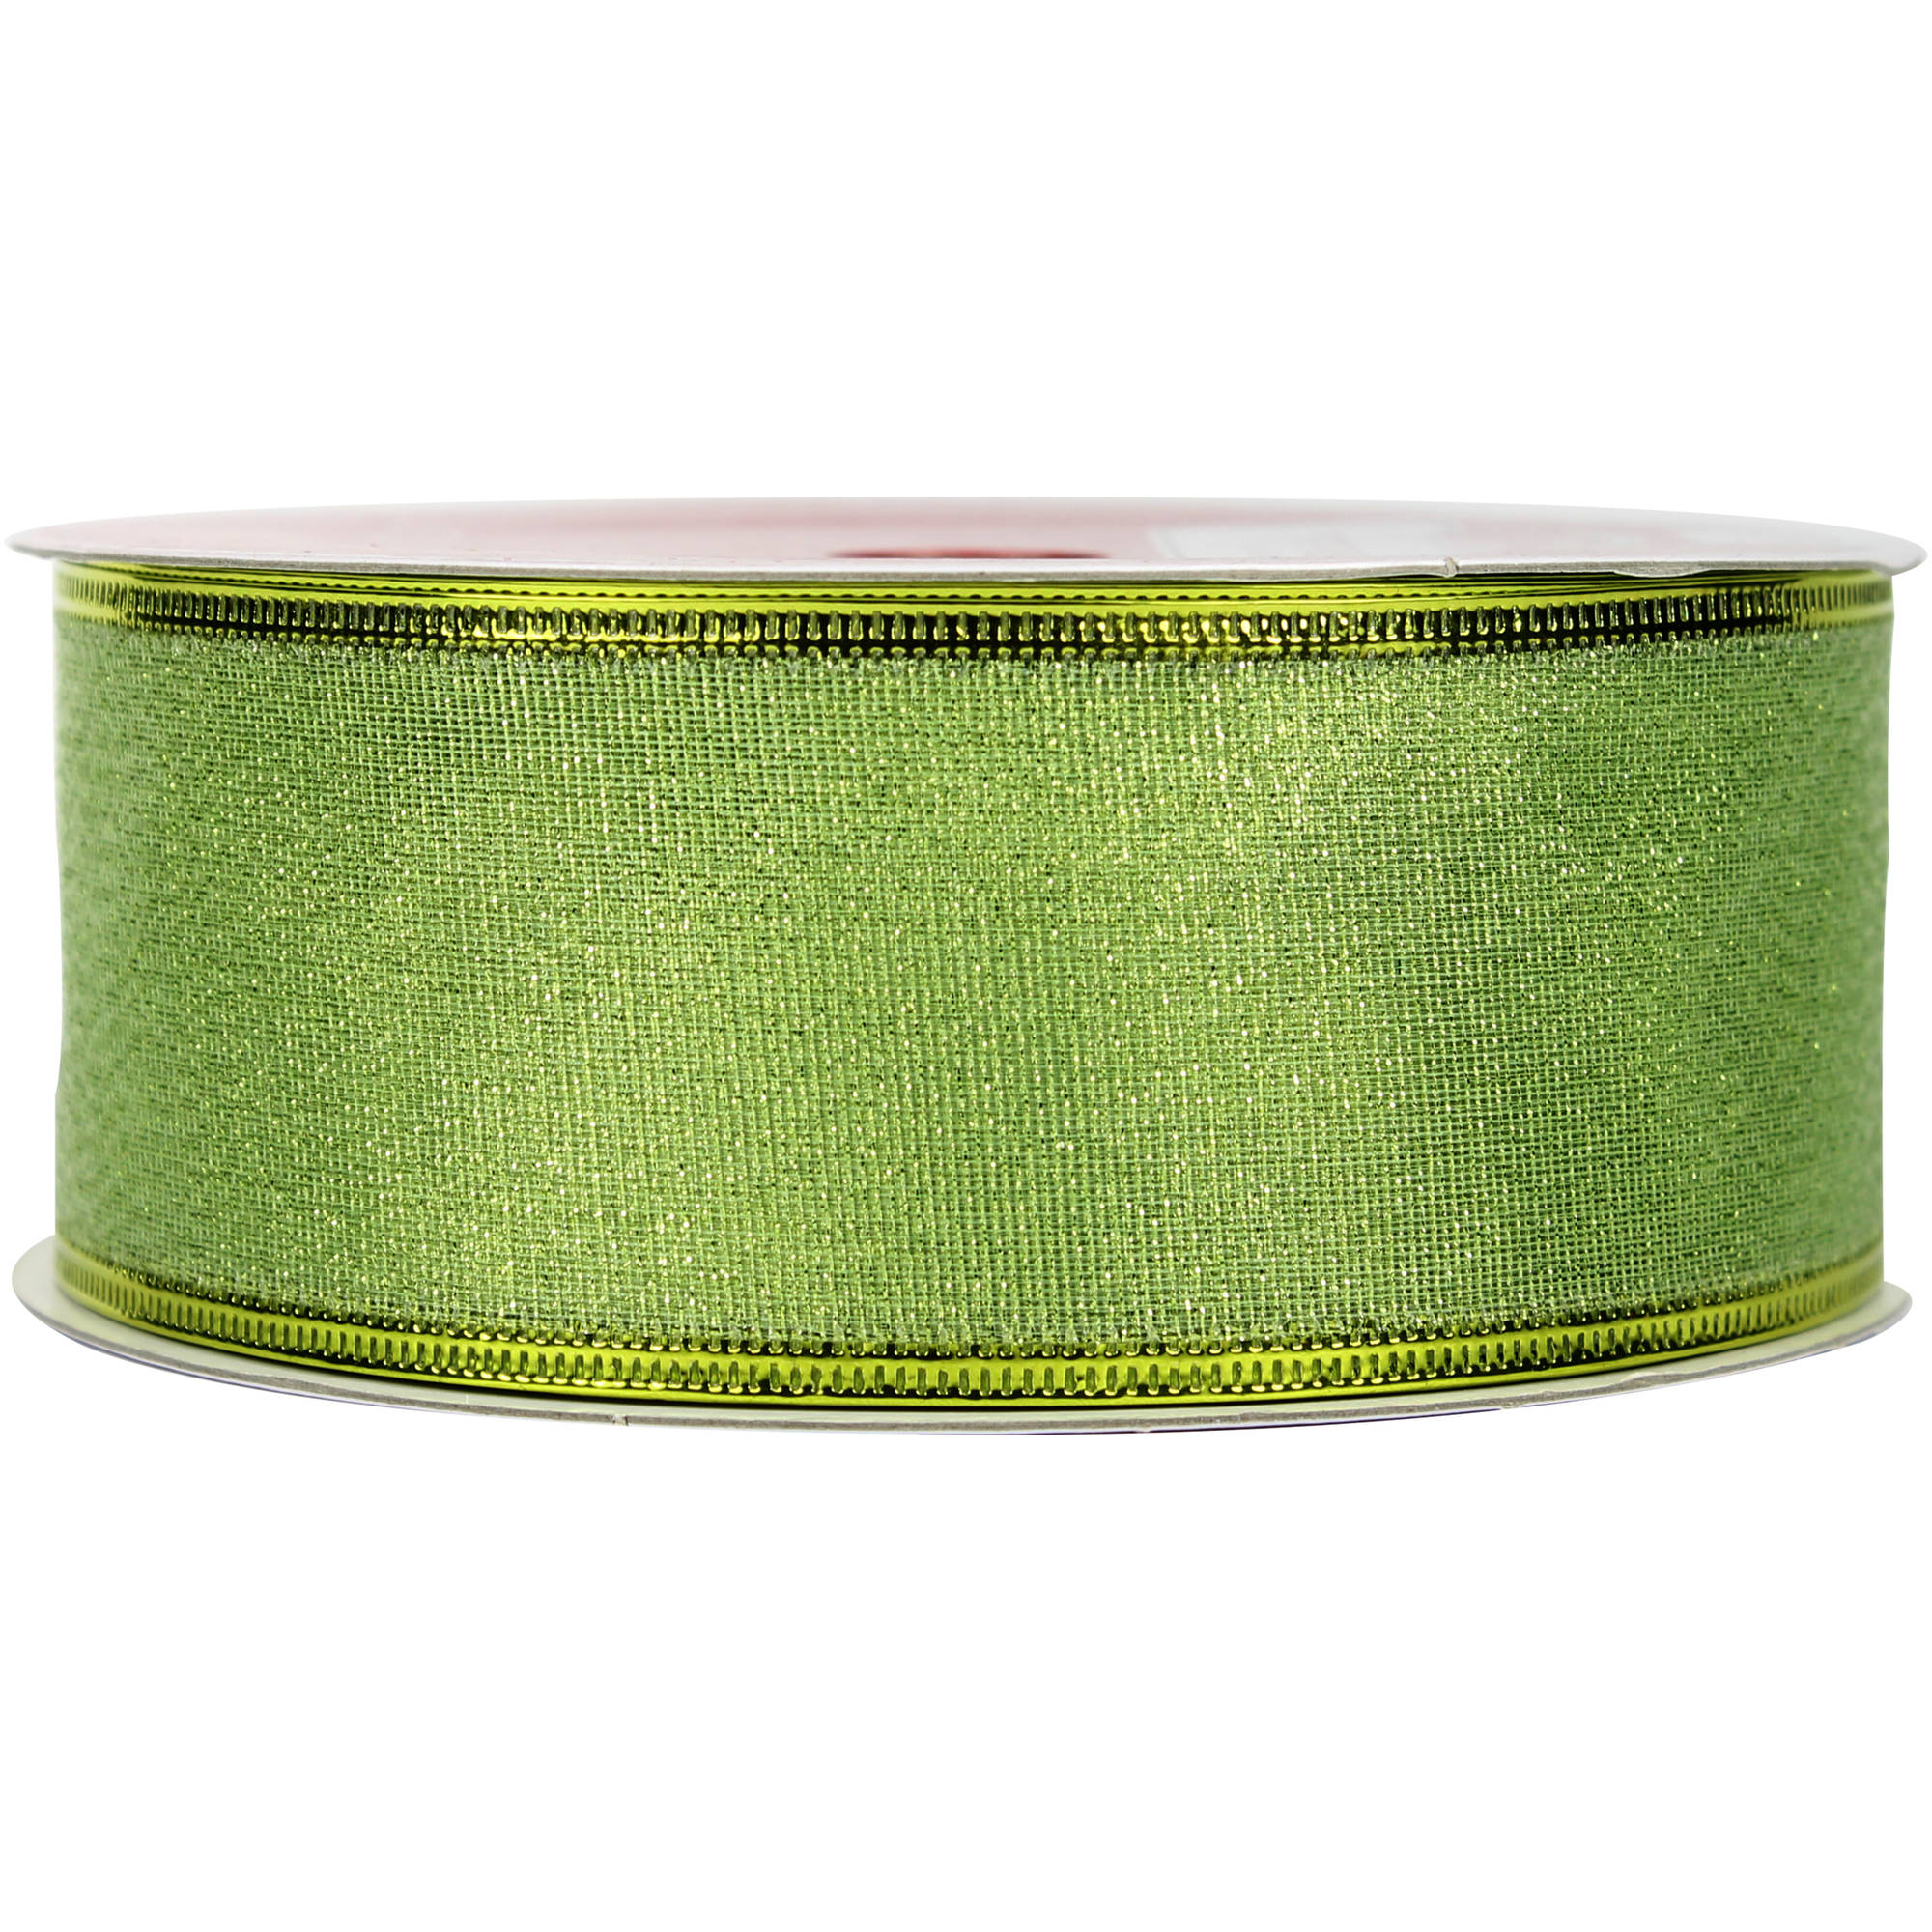 "Holiday Time Christmas Decor Green Metallic Lame 2"" x 75' Ribbon"